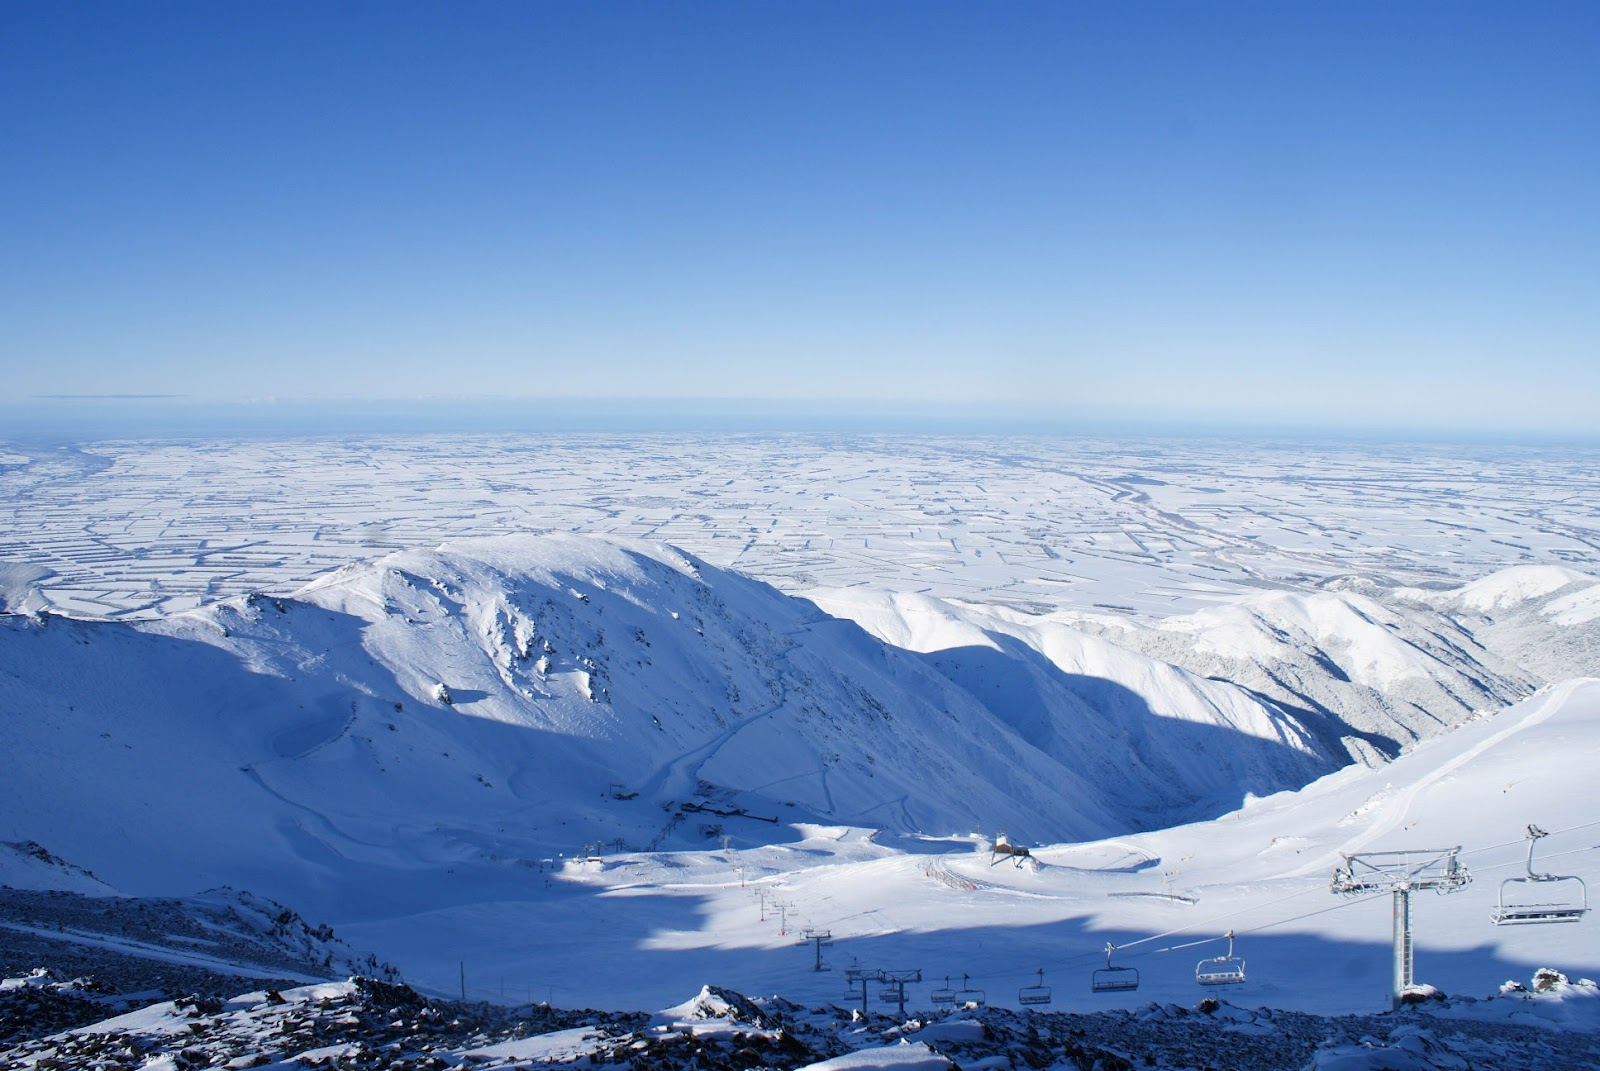 Alpine ski resorts plagued by lack of snow - Southern Hemisphere 2012 Season Underway